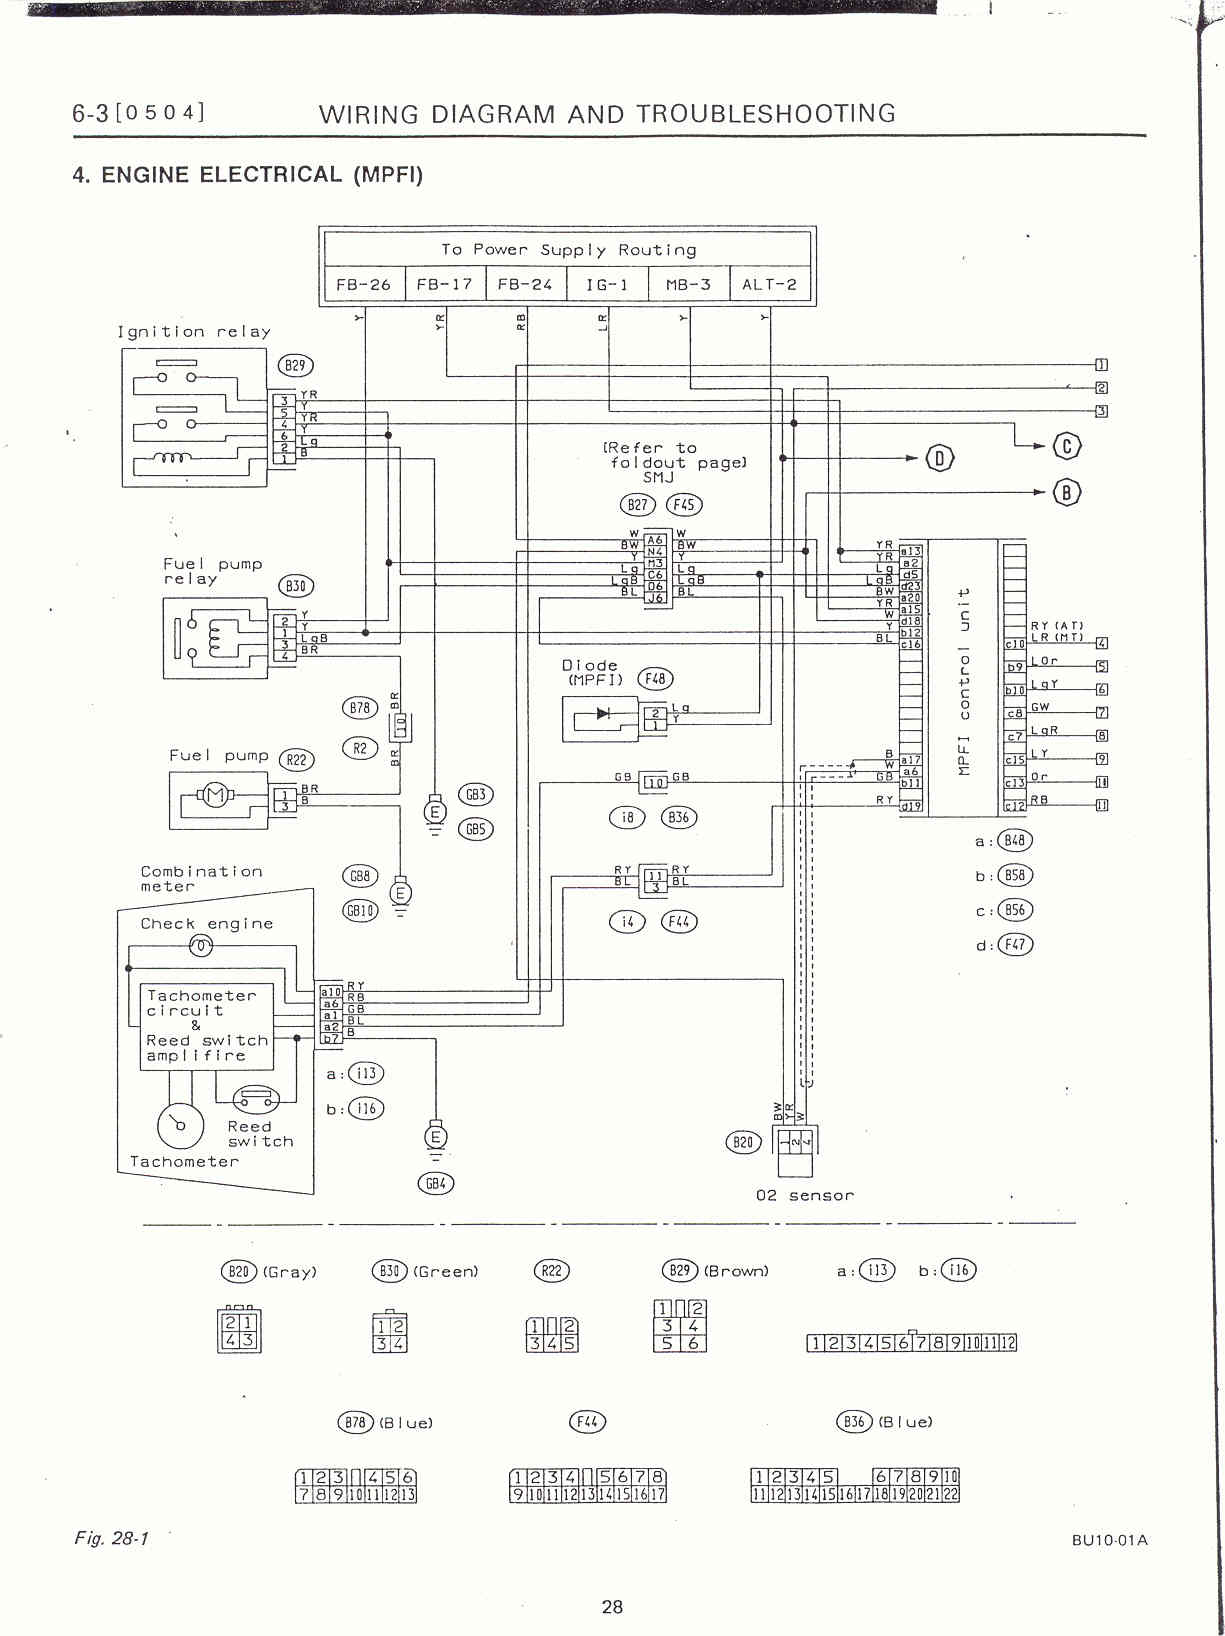 Subaru Legacy Transmission Wiring Diagram Circuit Schematic 2003 Acura Surrealmirage Swap Electrical Info Notes Ford Model T